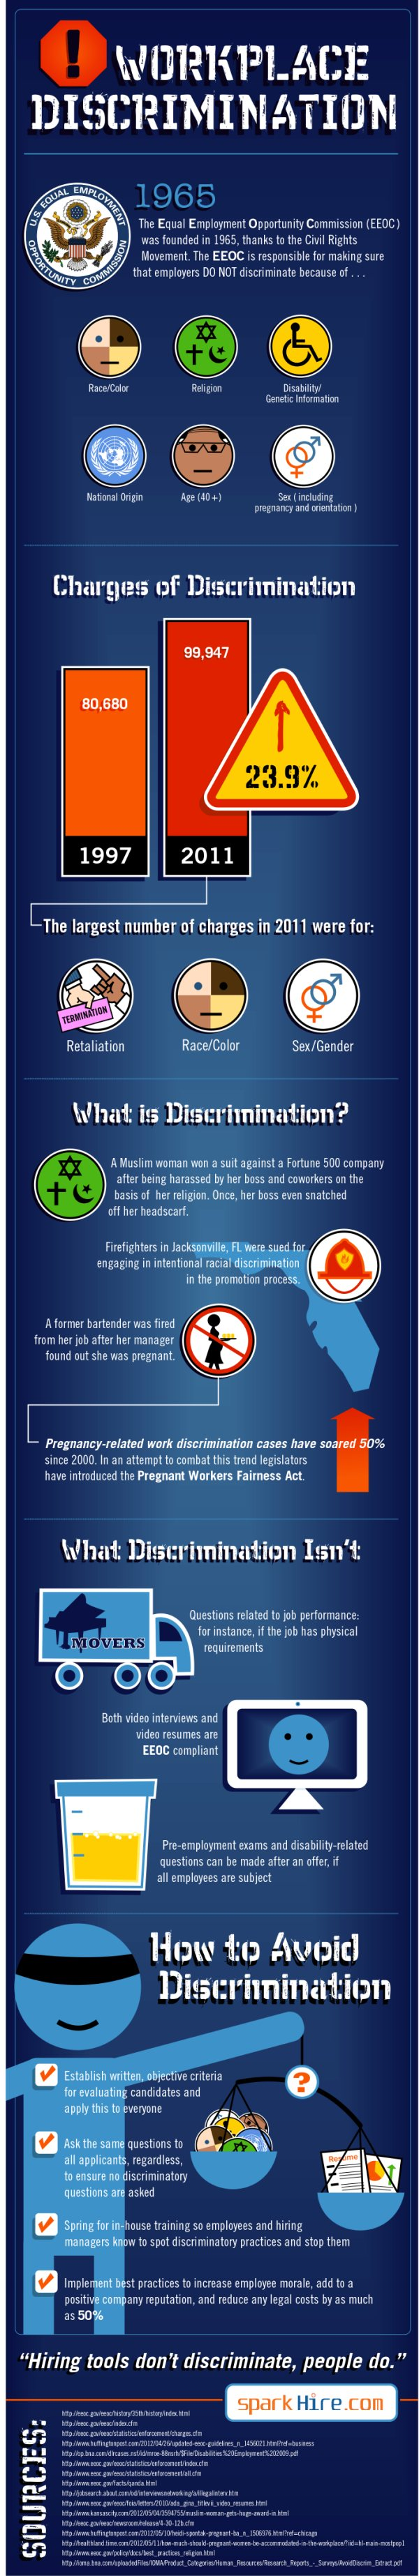 Common Charges of Workplace Discrimination